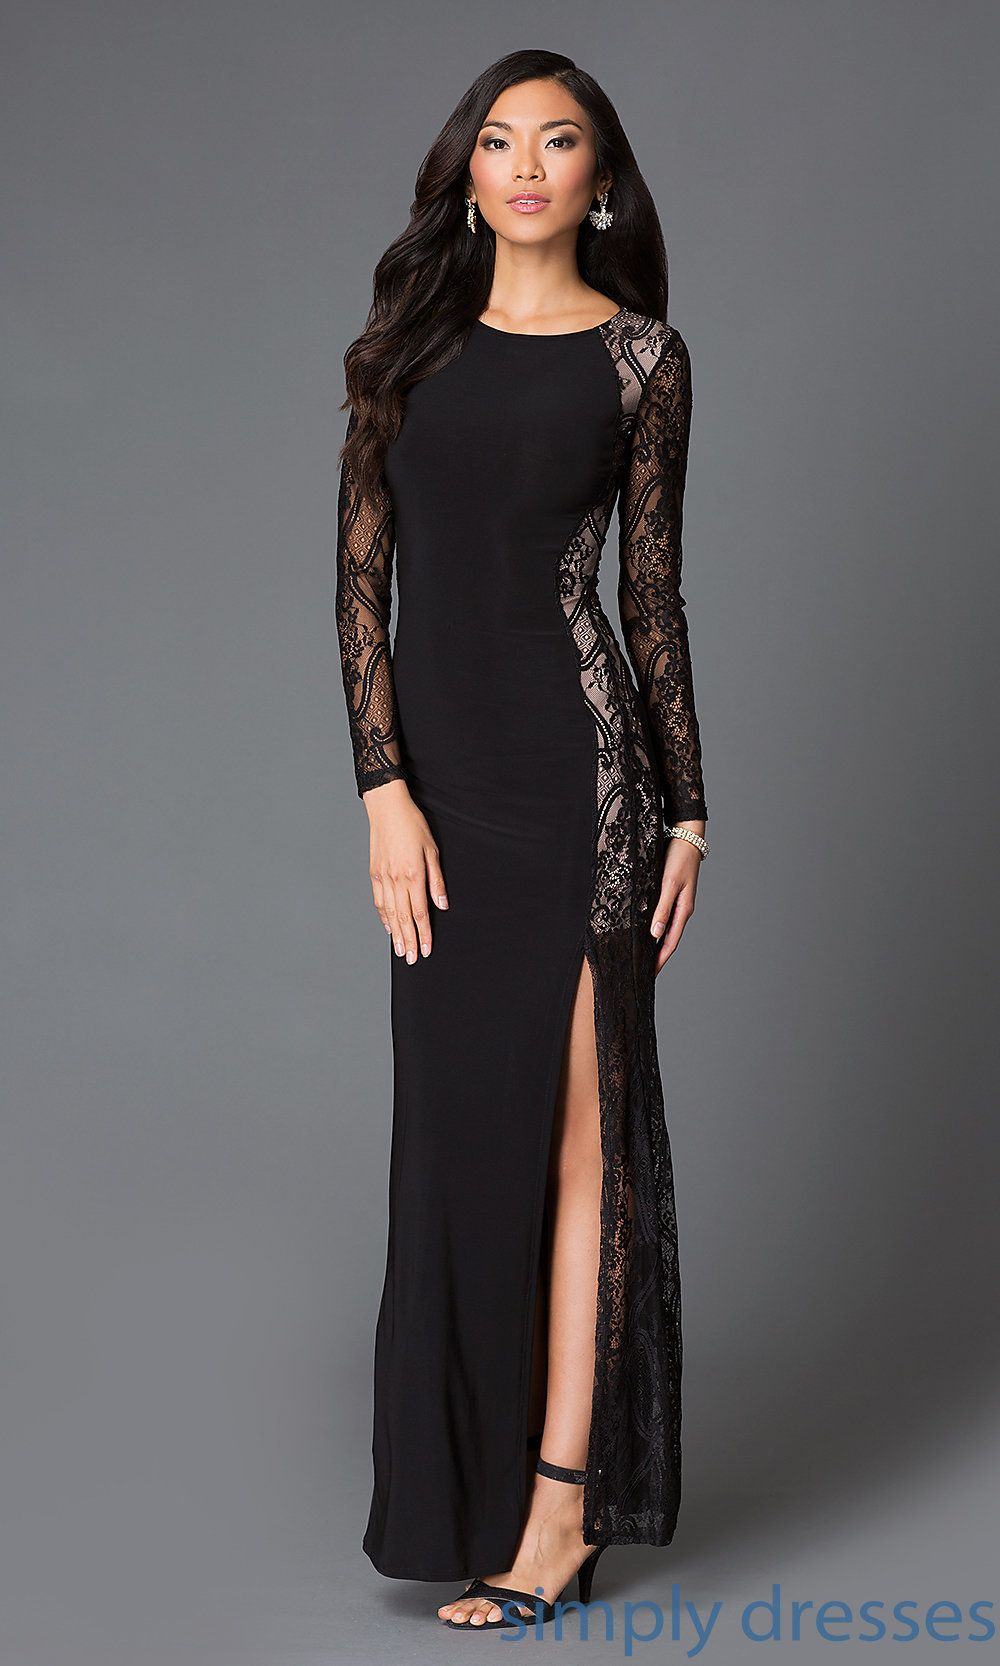 Black Lace Embellished Long Sleeve Formal Gown Black Formal Gown